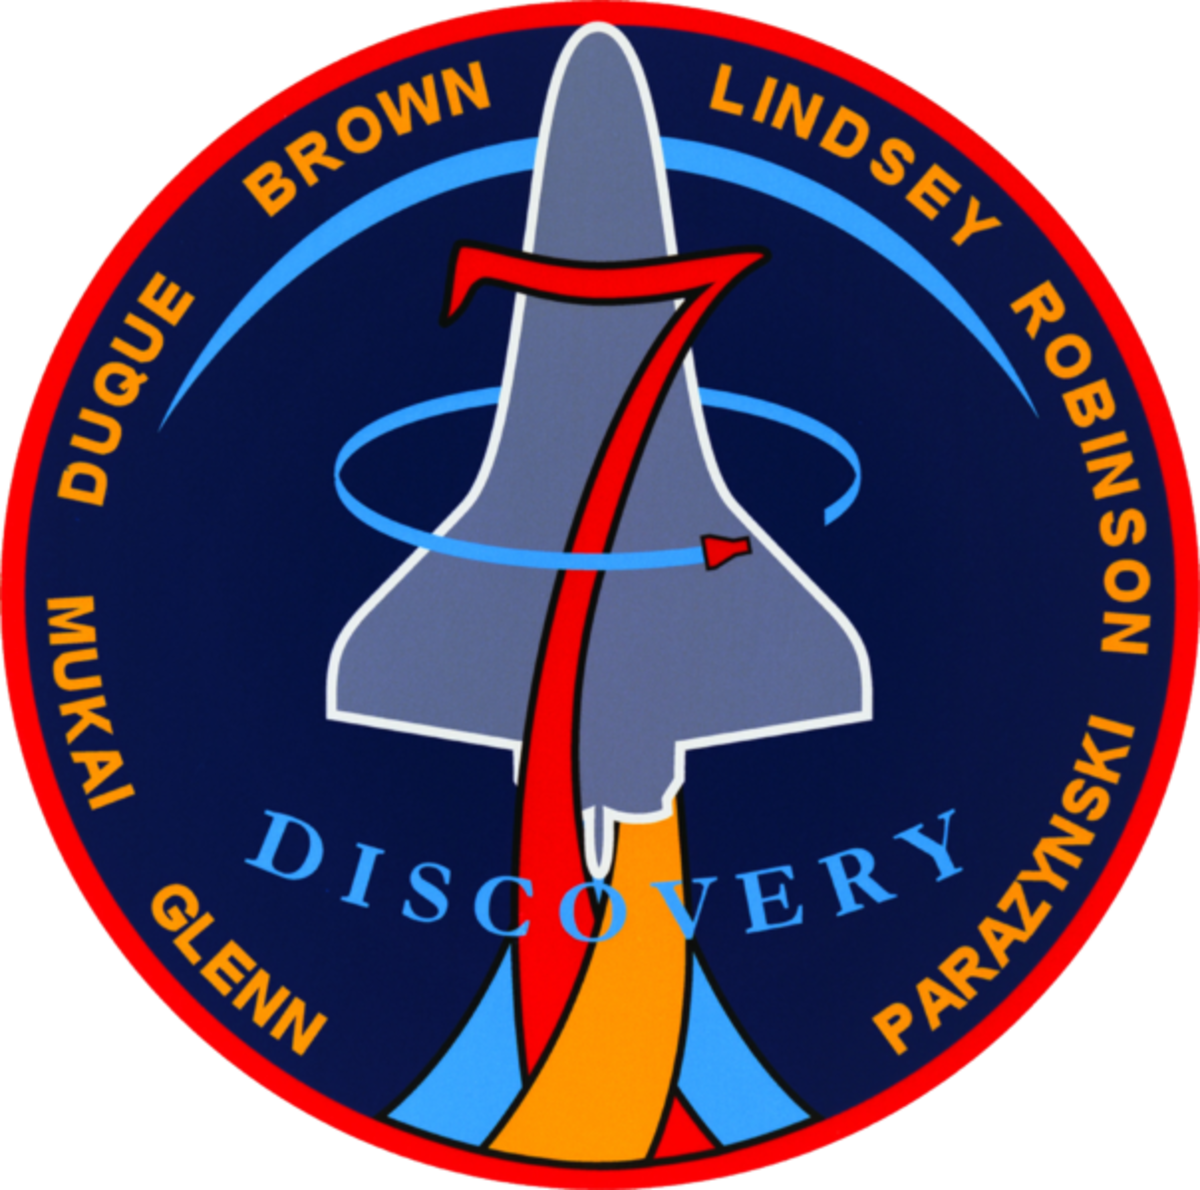 DISCOVERY 7